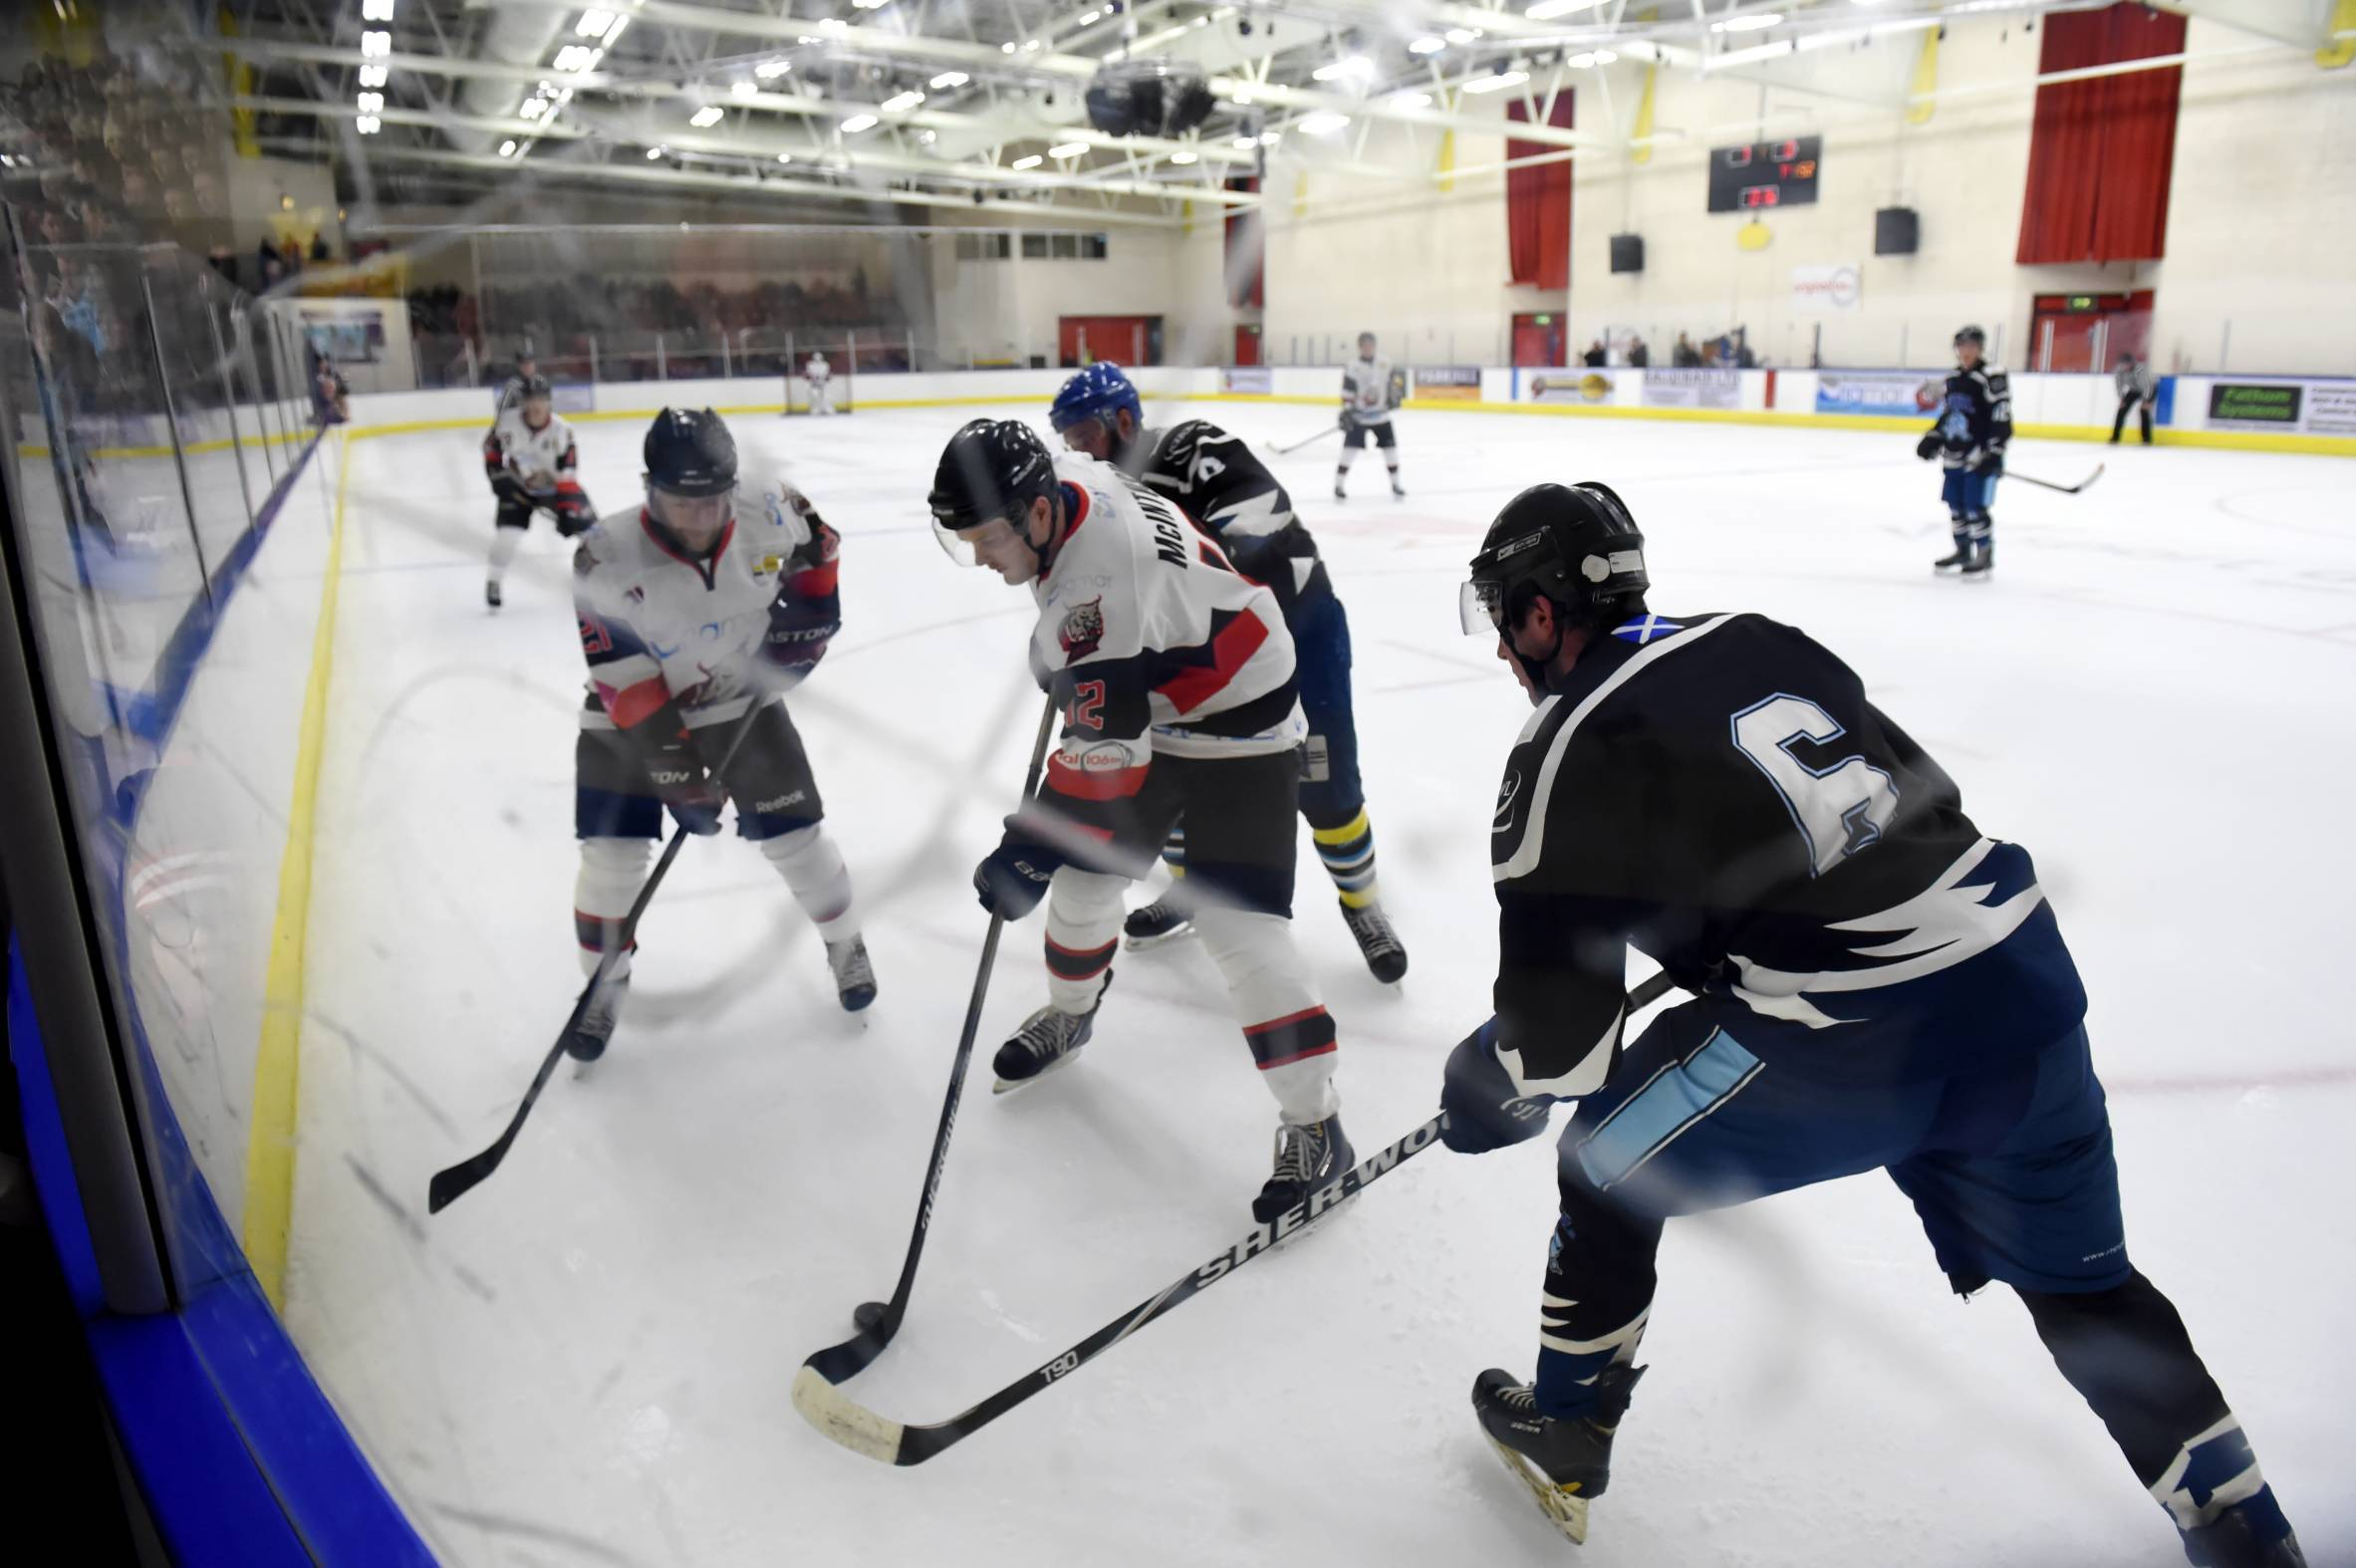 Aberdeen Lynx in action against Solway Sharks.